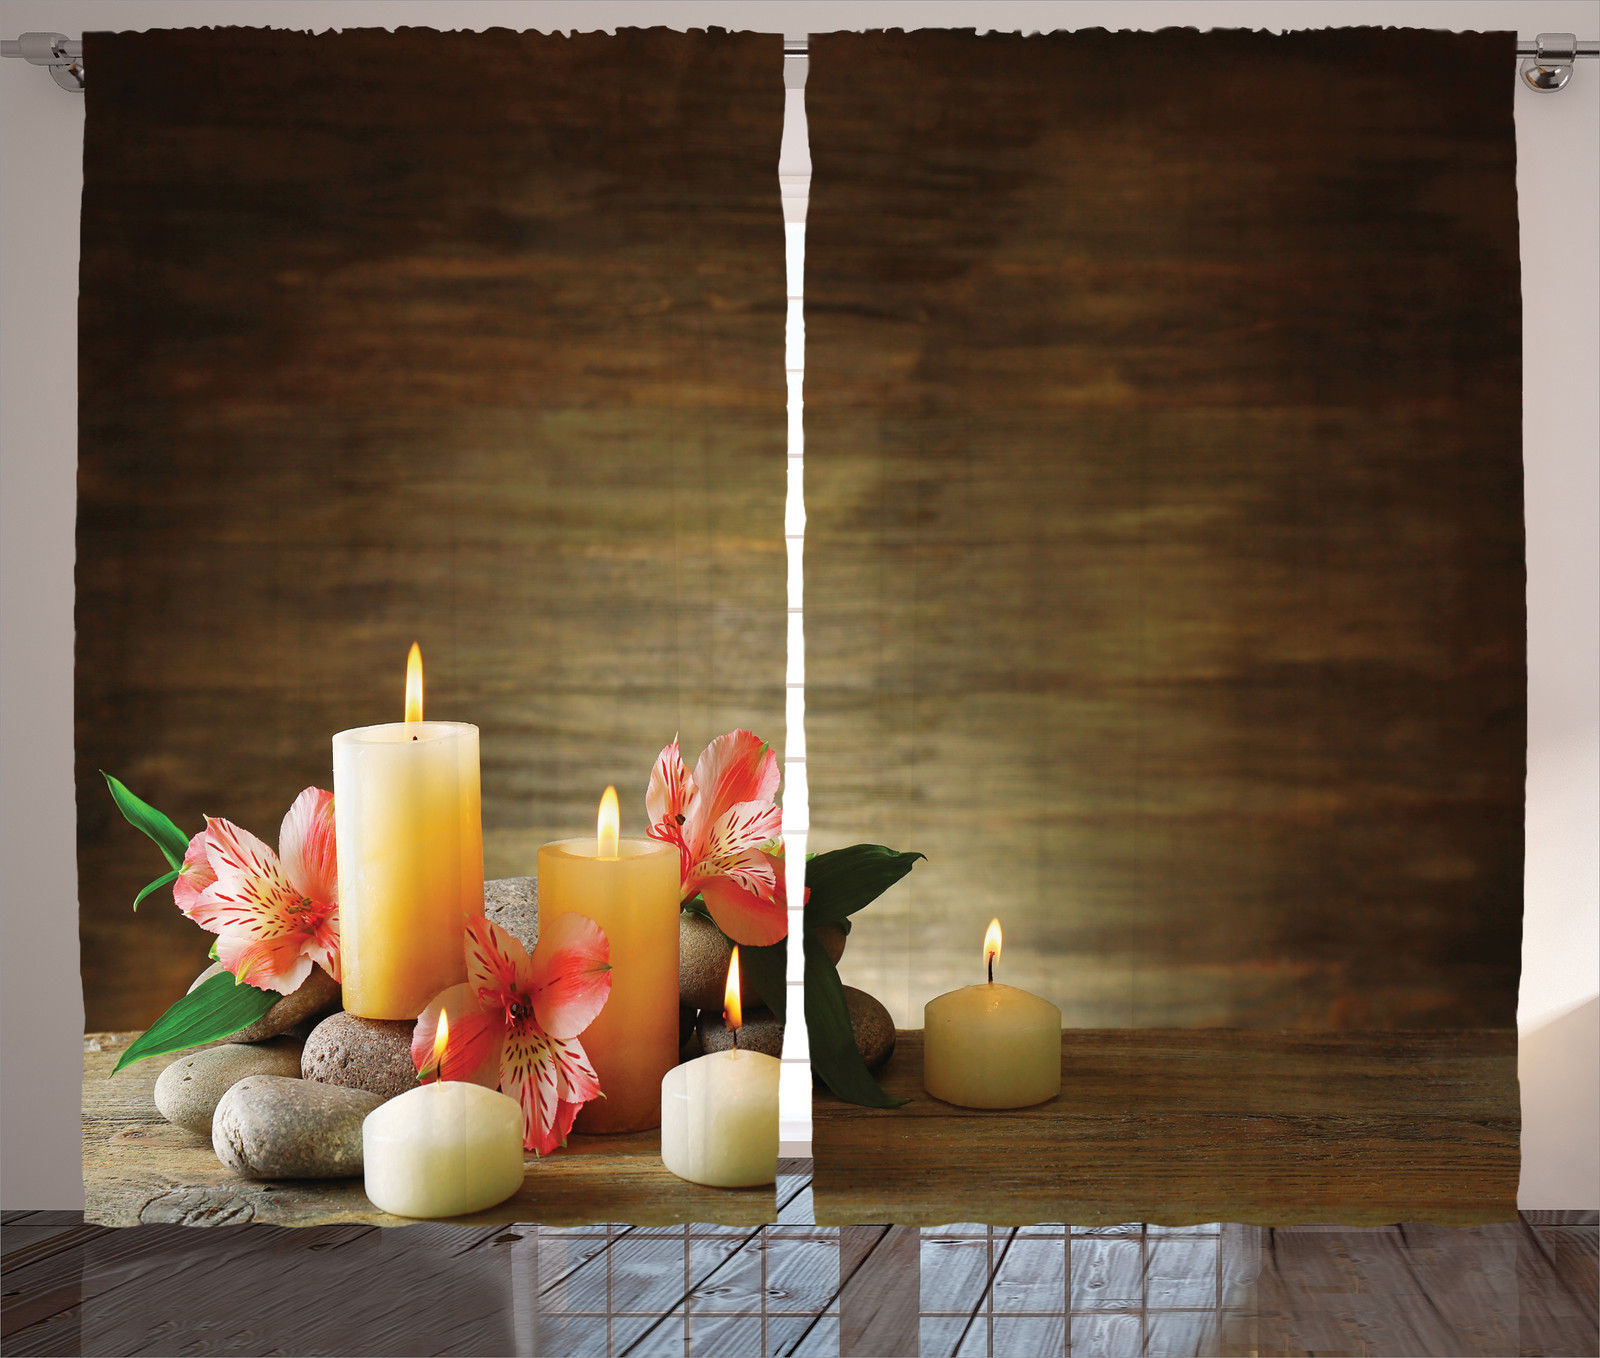 Http Www Ebay Com Itm Spa Theme With Candle Wellbeing Neutrality Yoga Home Decor Curtain 2 Panels Set 282124052949